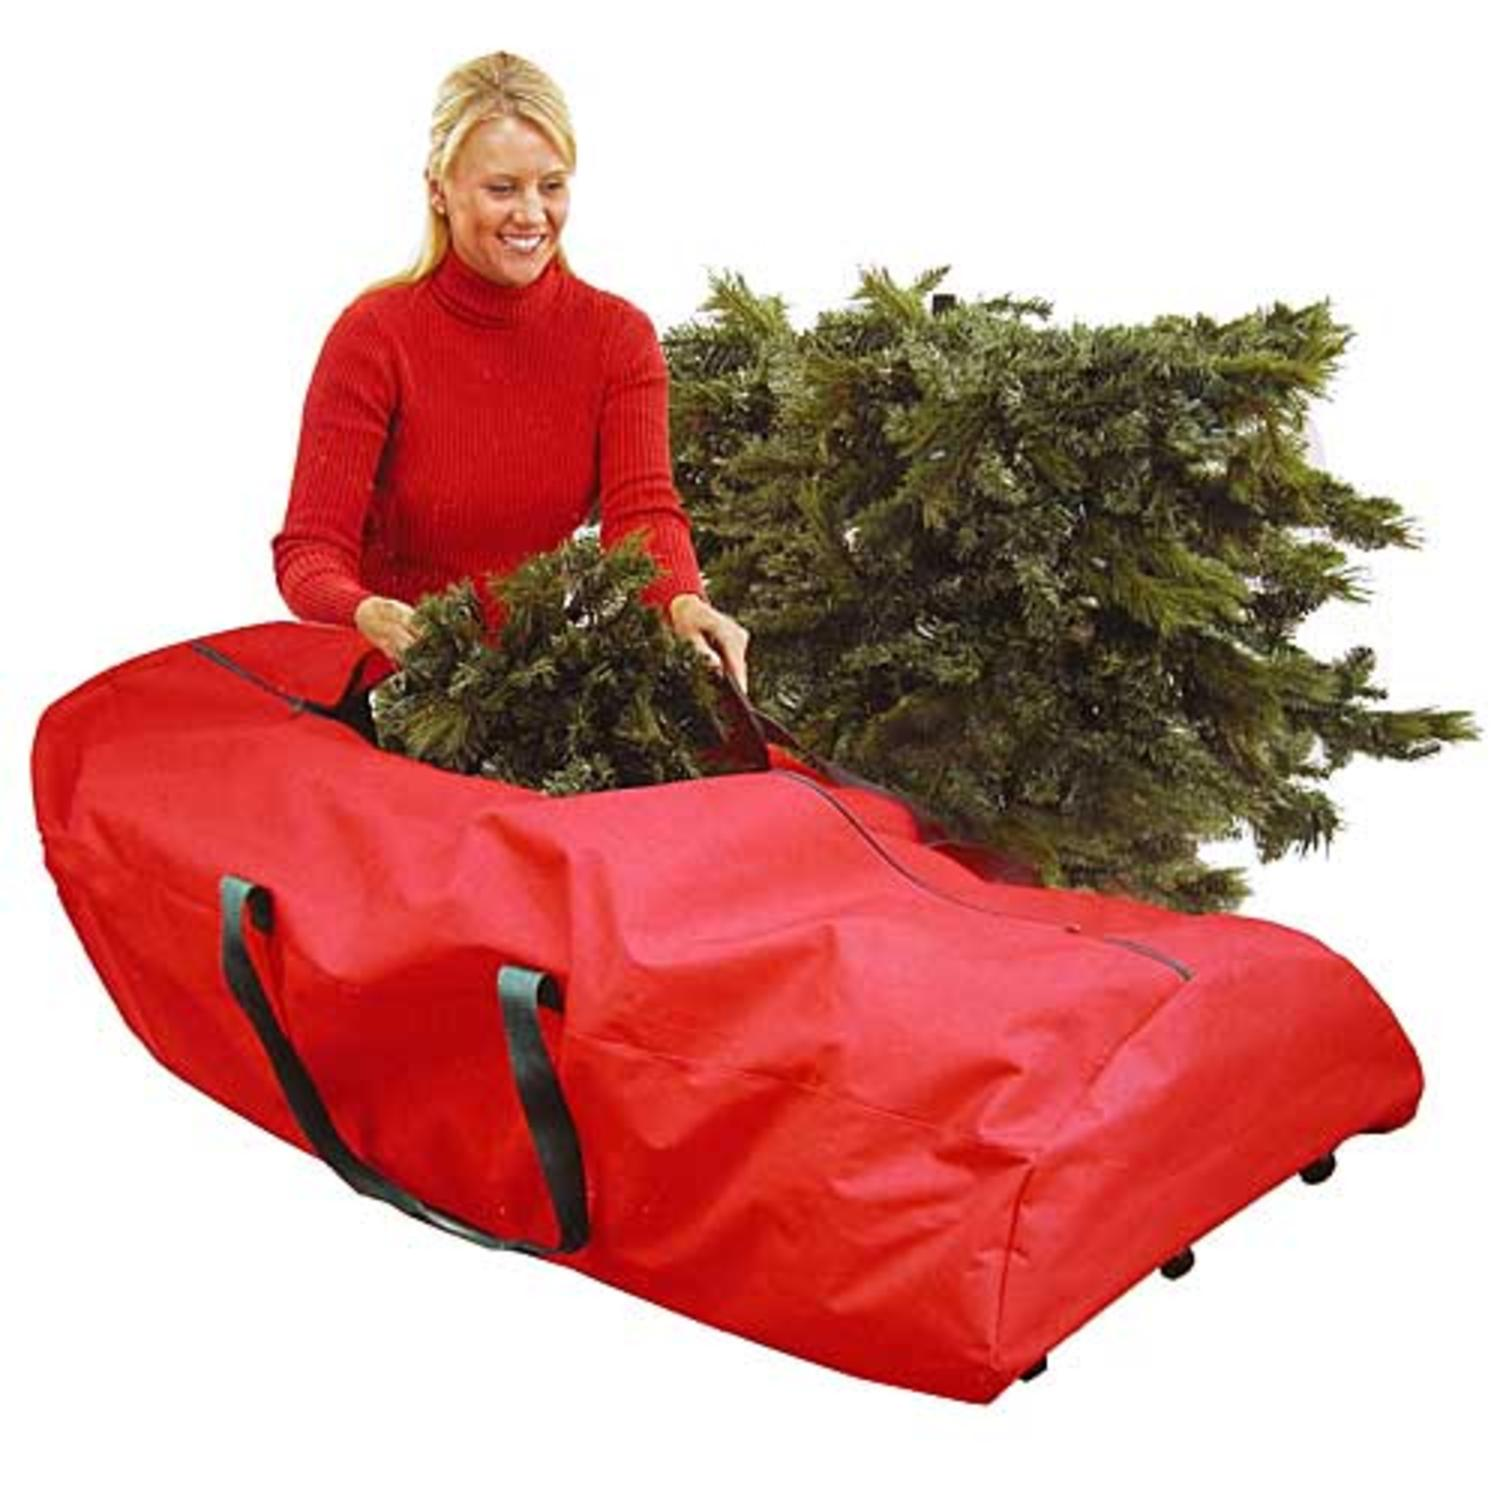 56 heavy duty extra large red rolling artificial christmas tree storage bag for 9 39 trees. Black Bedroom Furniture Sets. Home Design Ideas